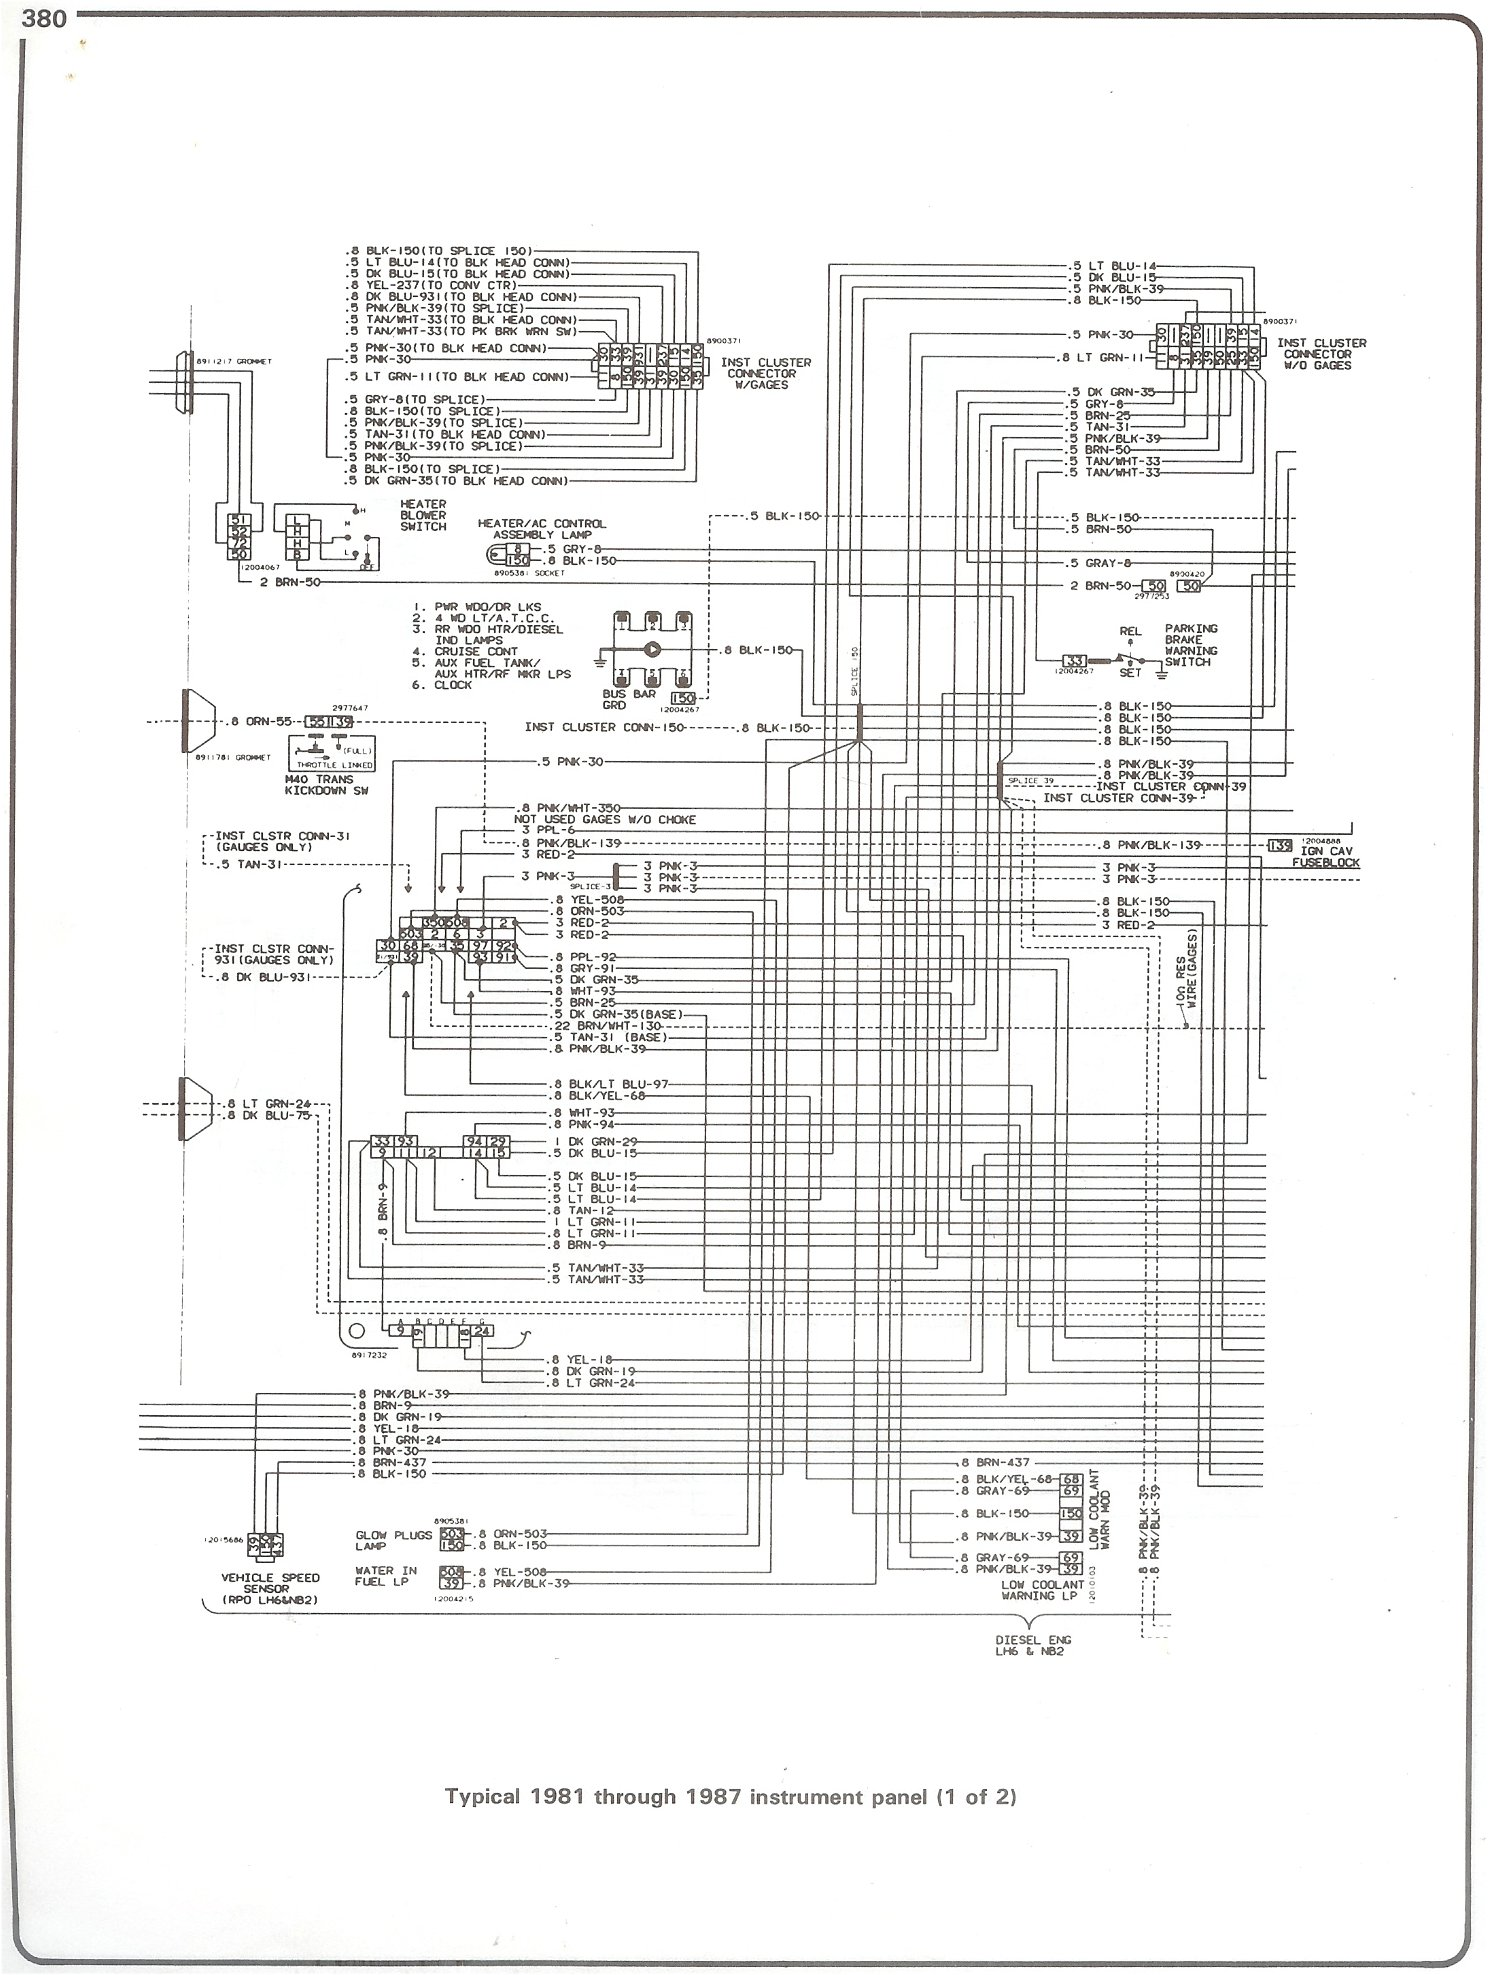 1985 K 5 Chevy Blazer Wiring Diagram - Wiring Diagram K3 Dash Wiring Diagram Blazer on